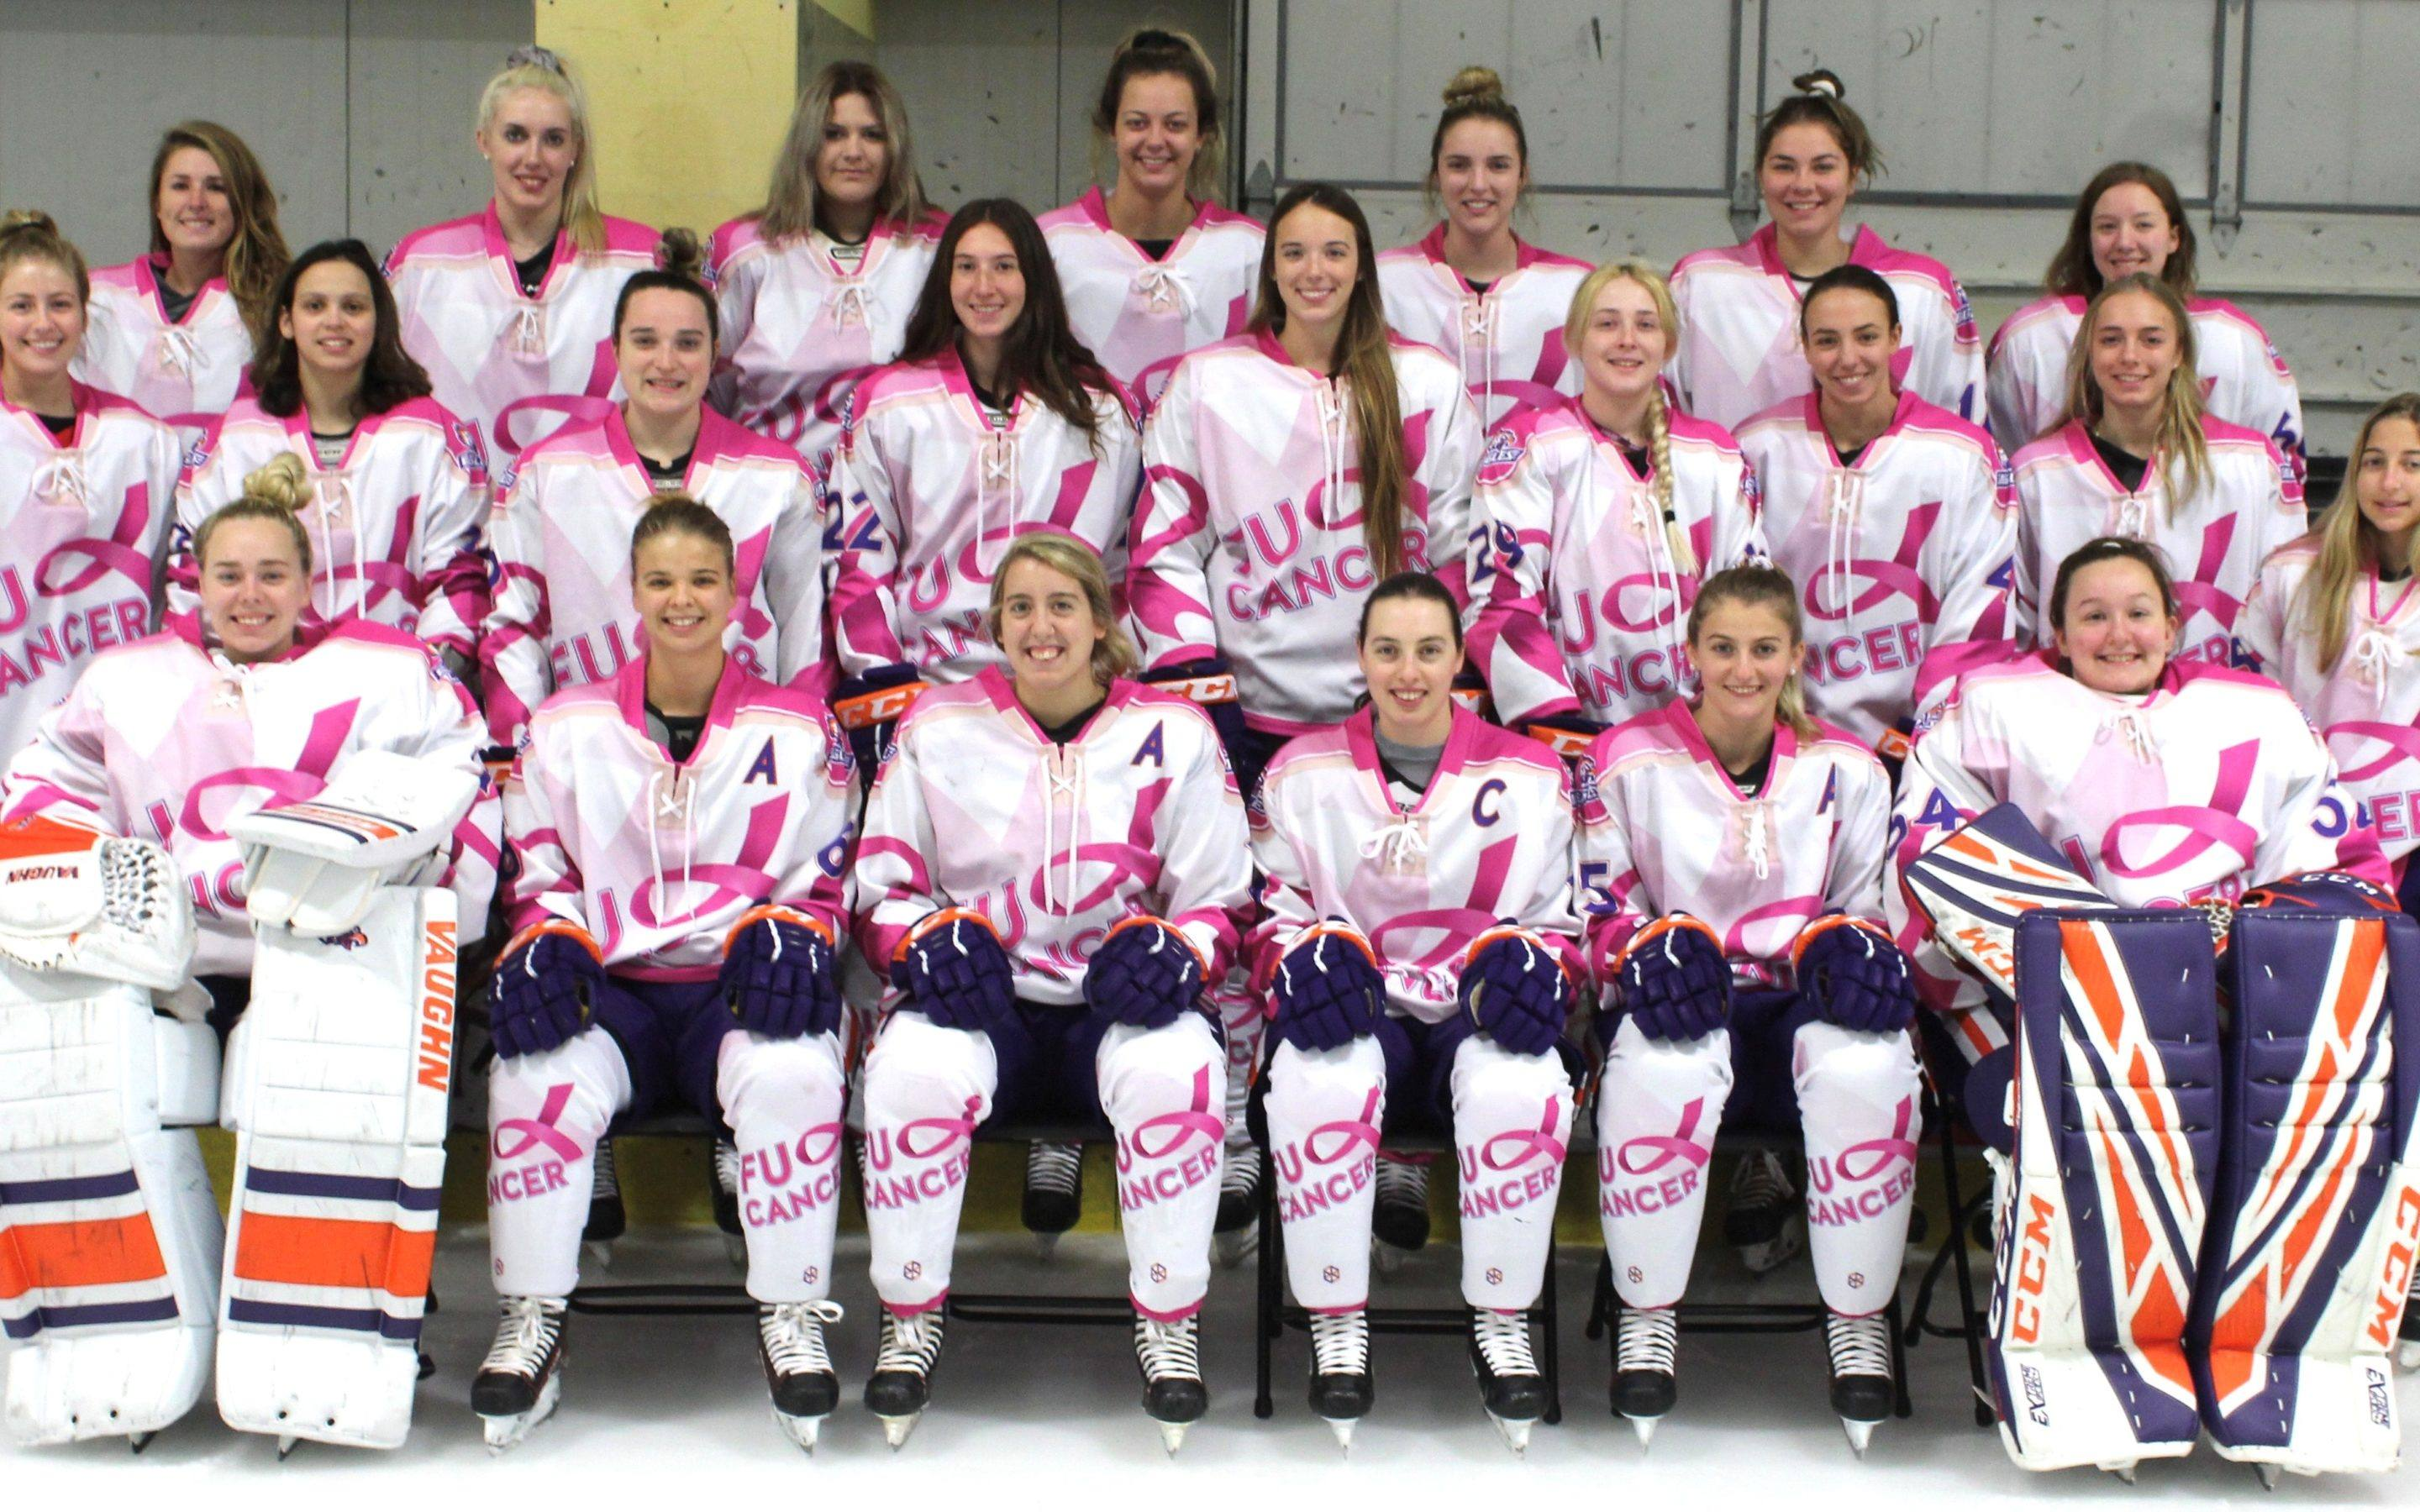 Post Women's Hockey Takes on Breast Cancer in Fundraiser Game